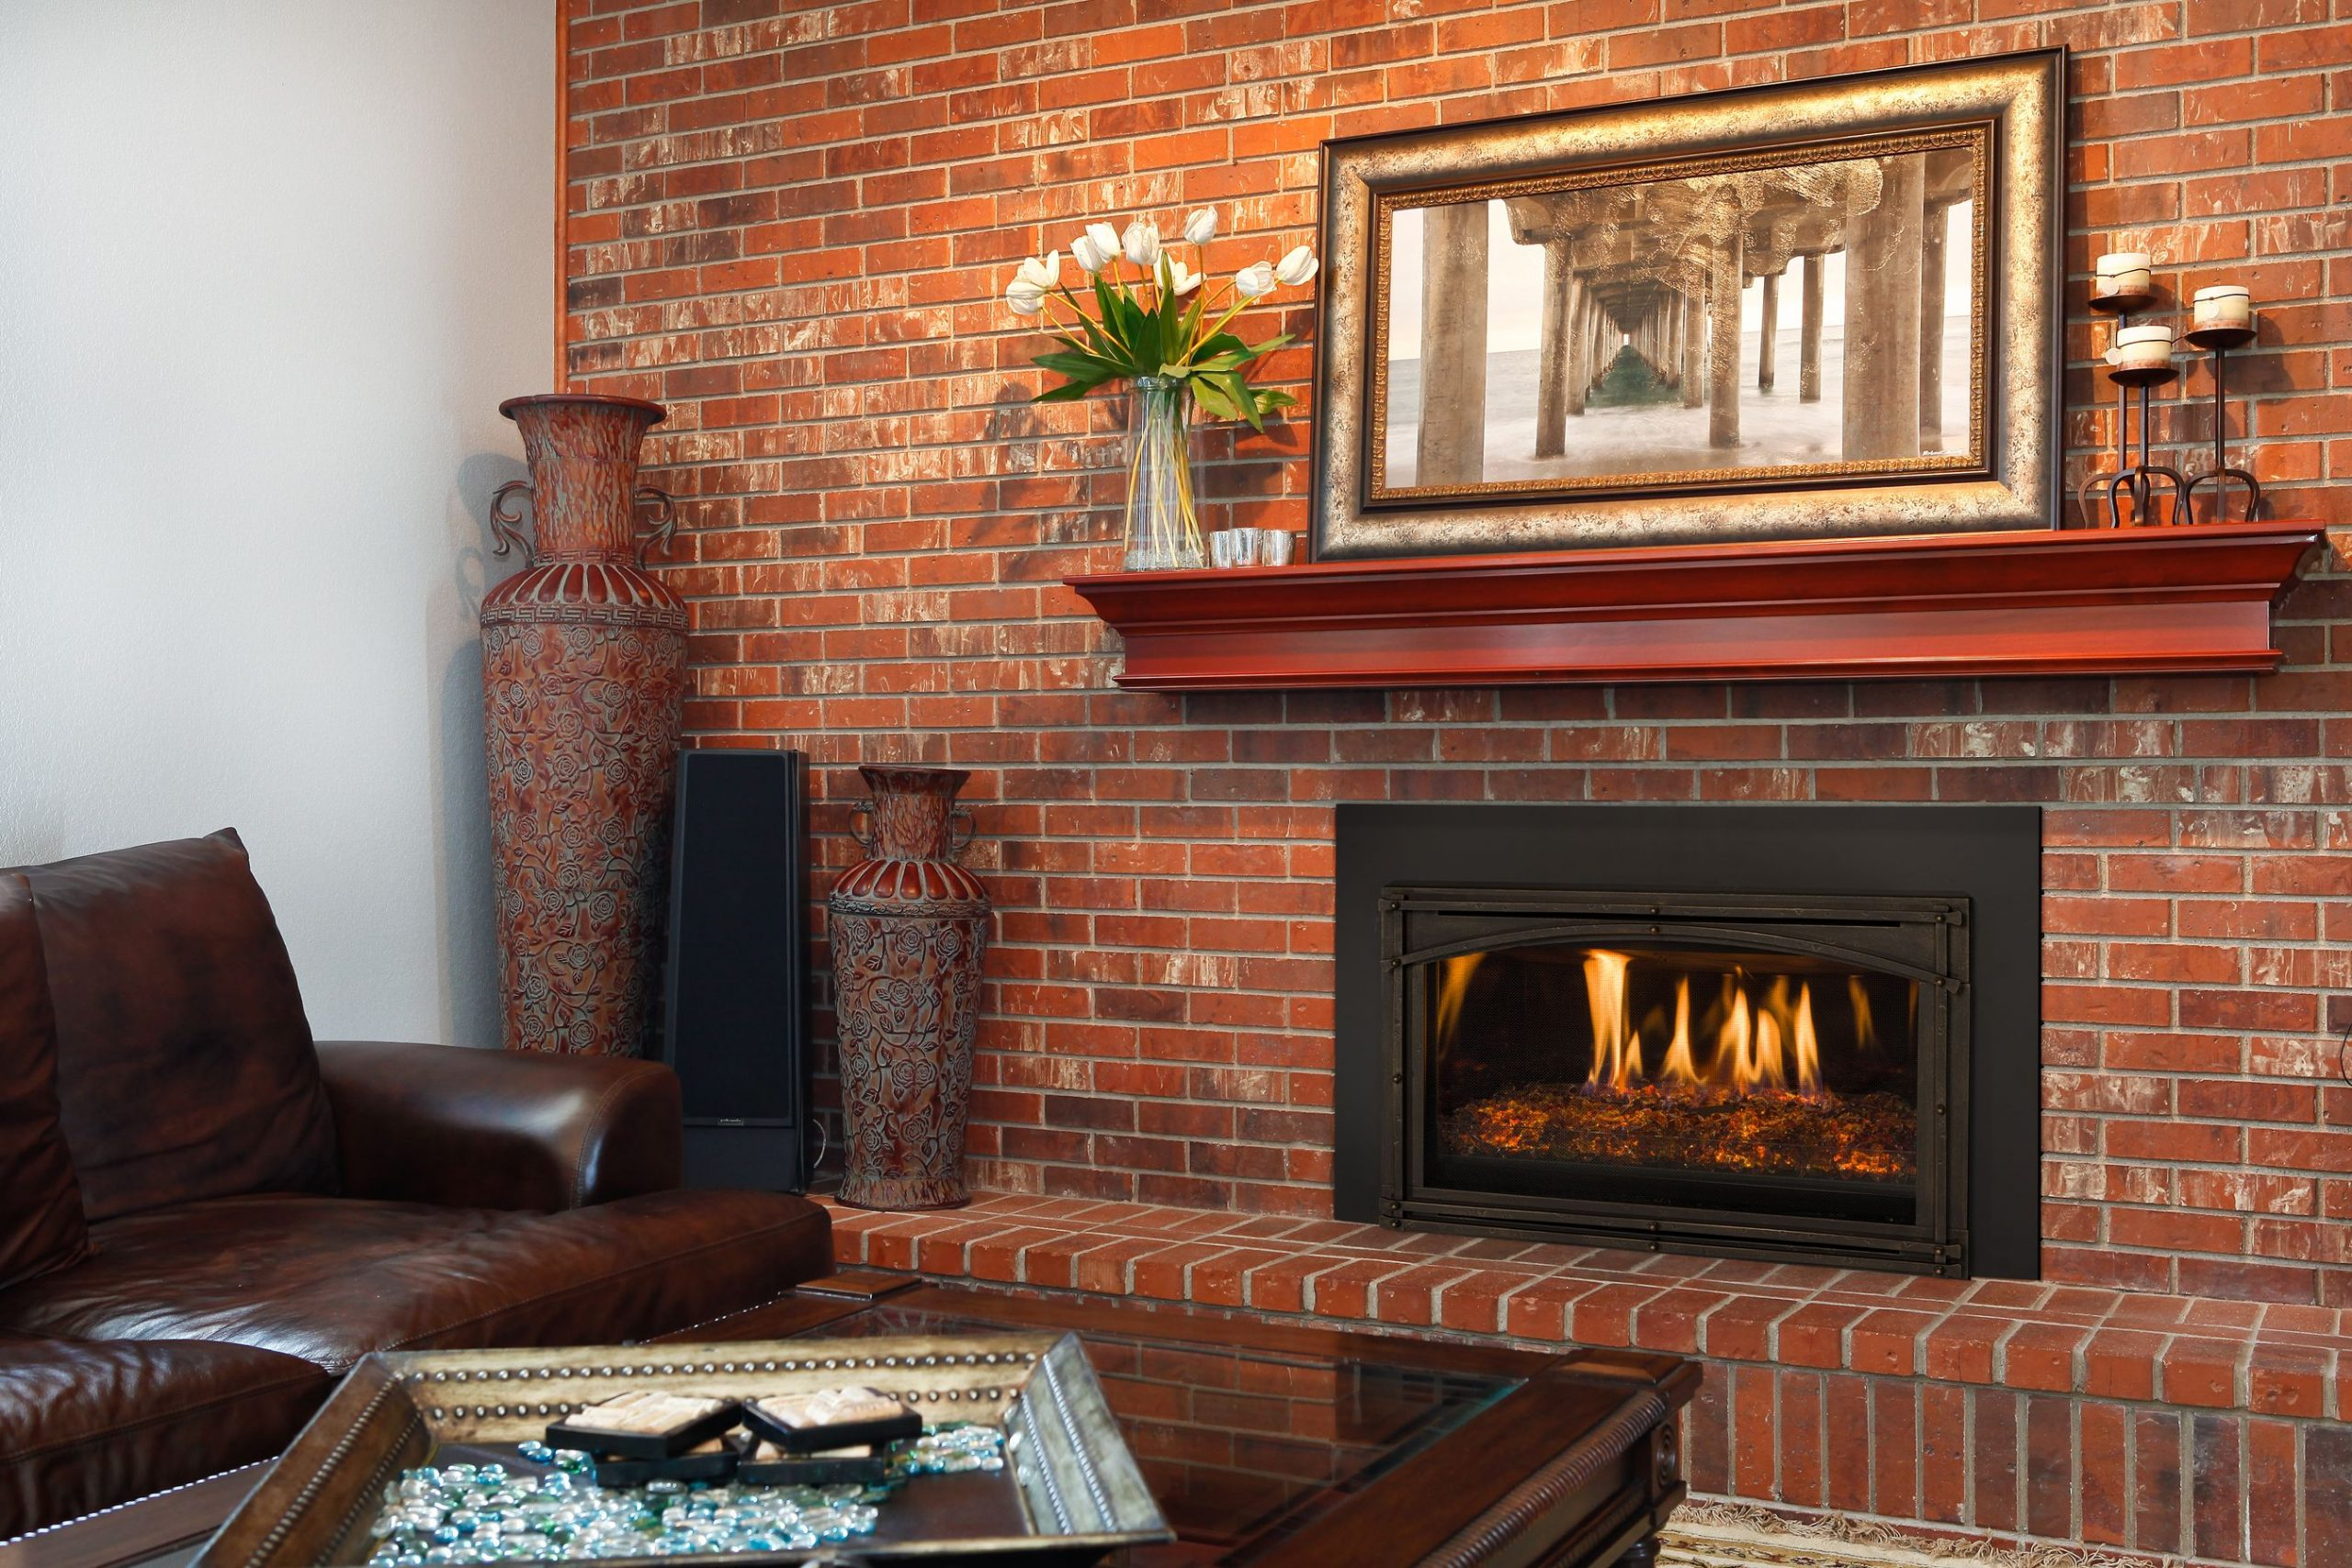 Replacing Your Old Fireplace with a New One